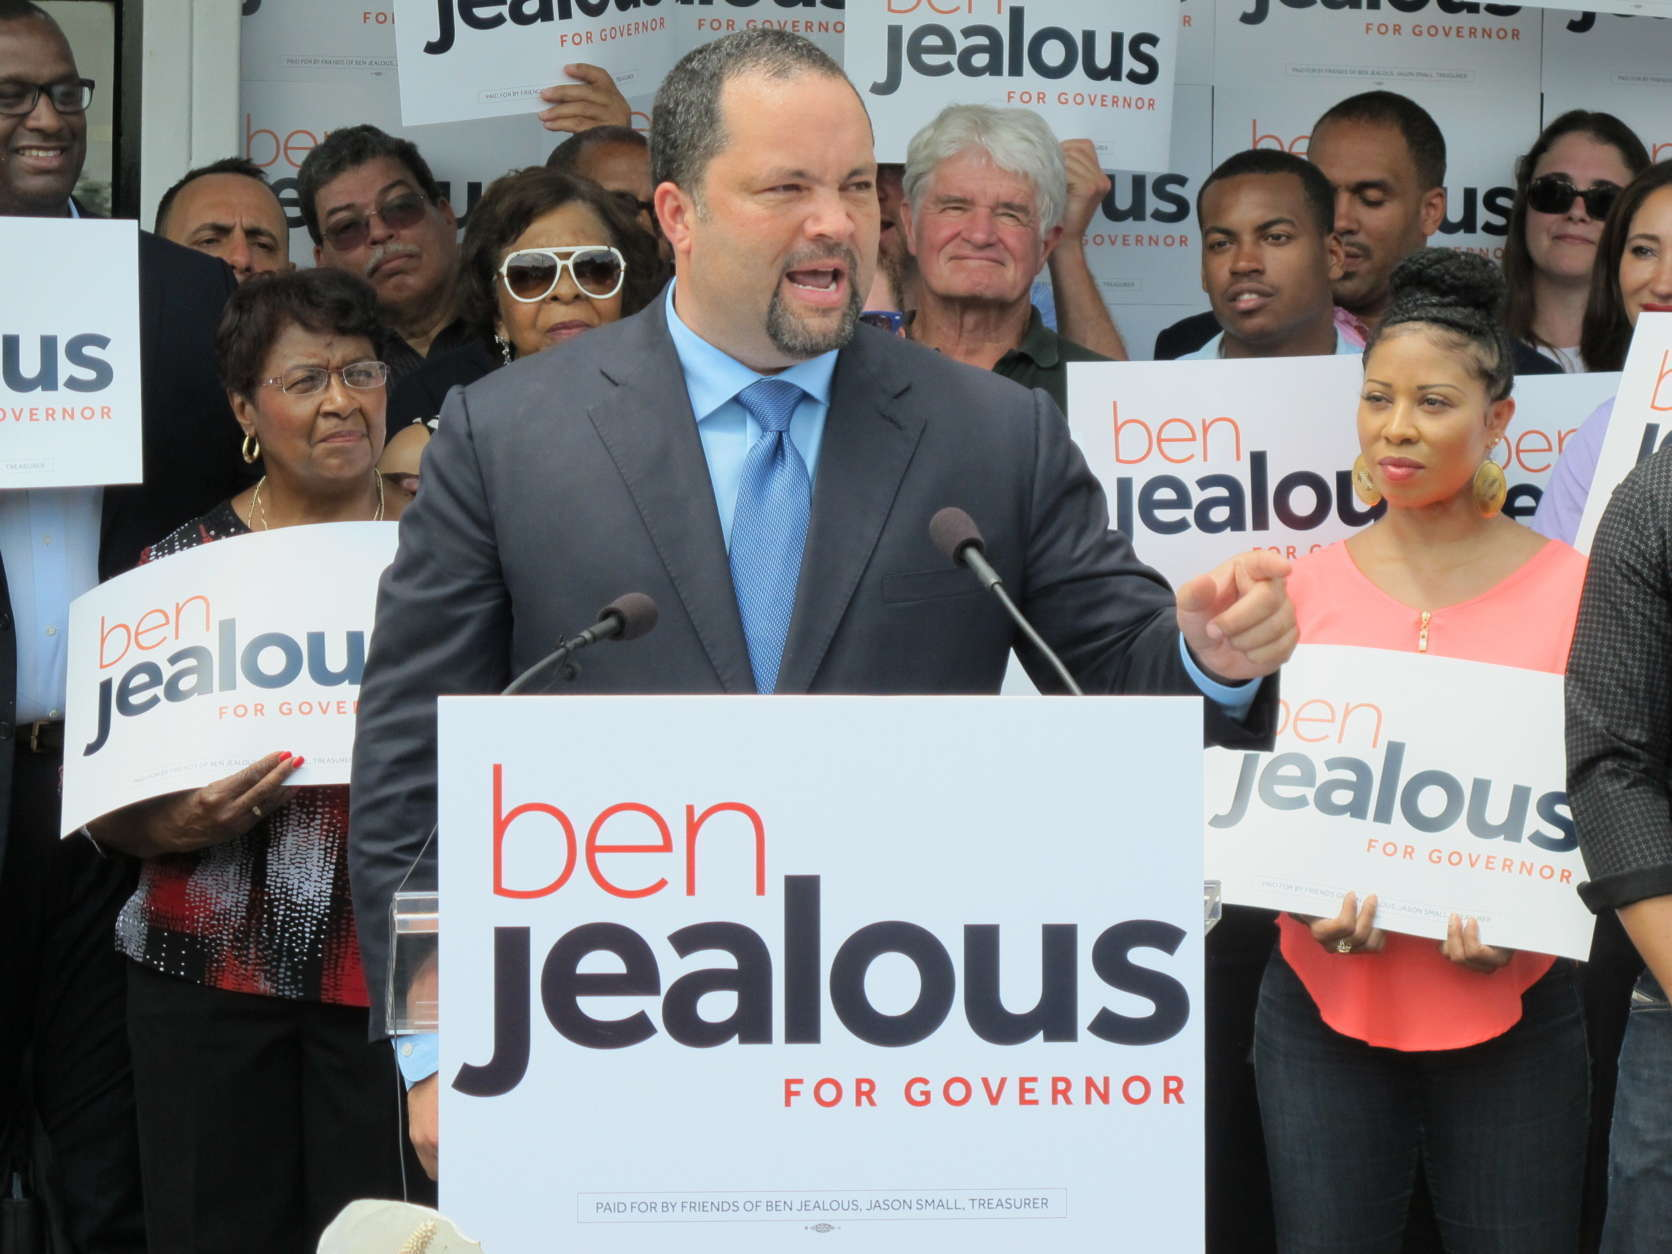 Former NAACP chairman Ben Jealous announces his campaign for governor of Maryland during a rally in Baltimore, Wednesday, May 31, 2017. Jealous wills seek the Democratic nomination. (AP Photo/Brian Witte)